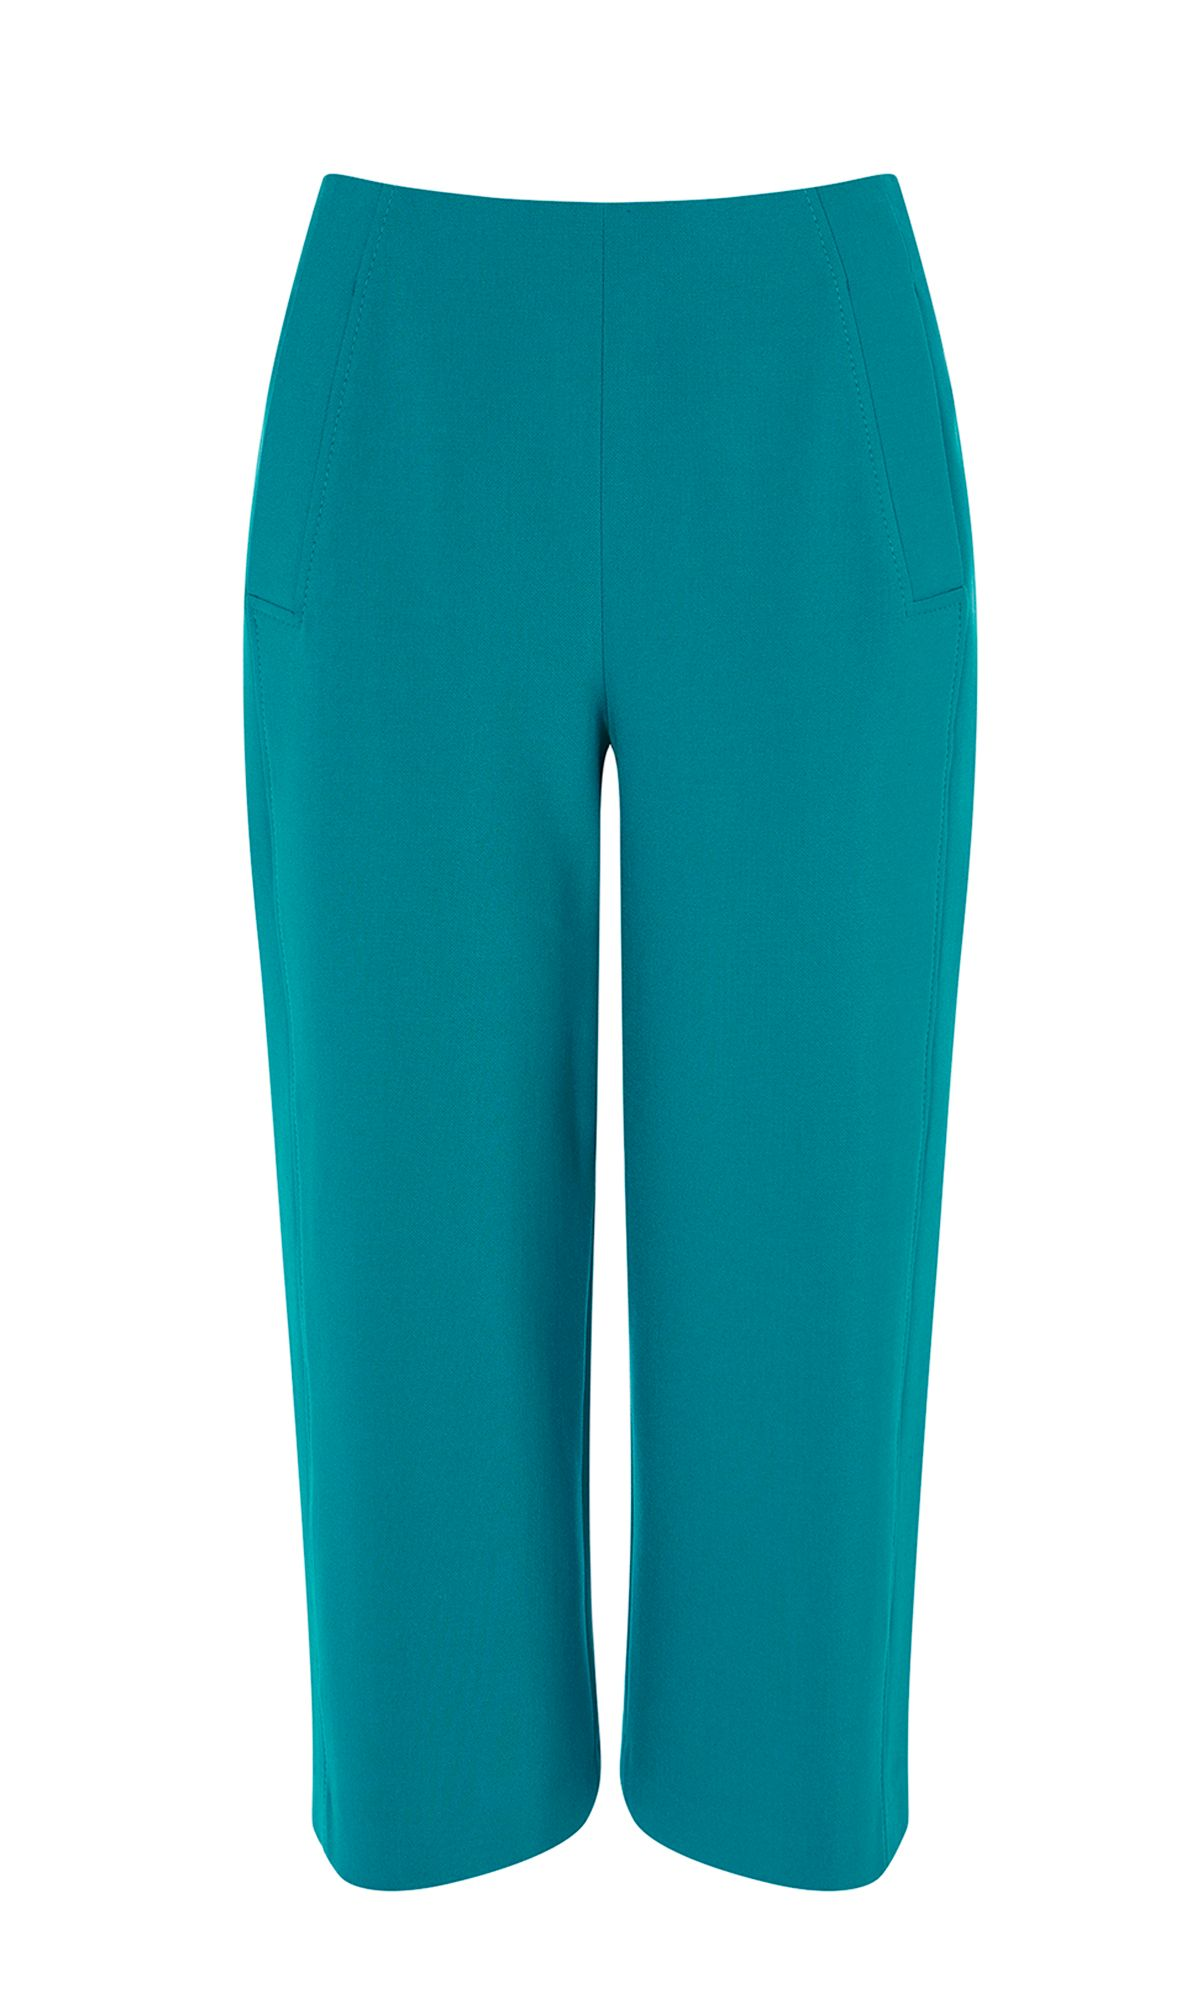 Karen Millen Cropped Wide Leg Trousers, Teal